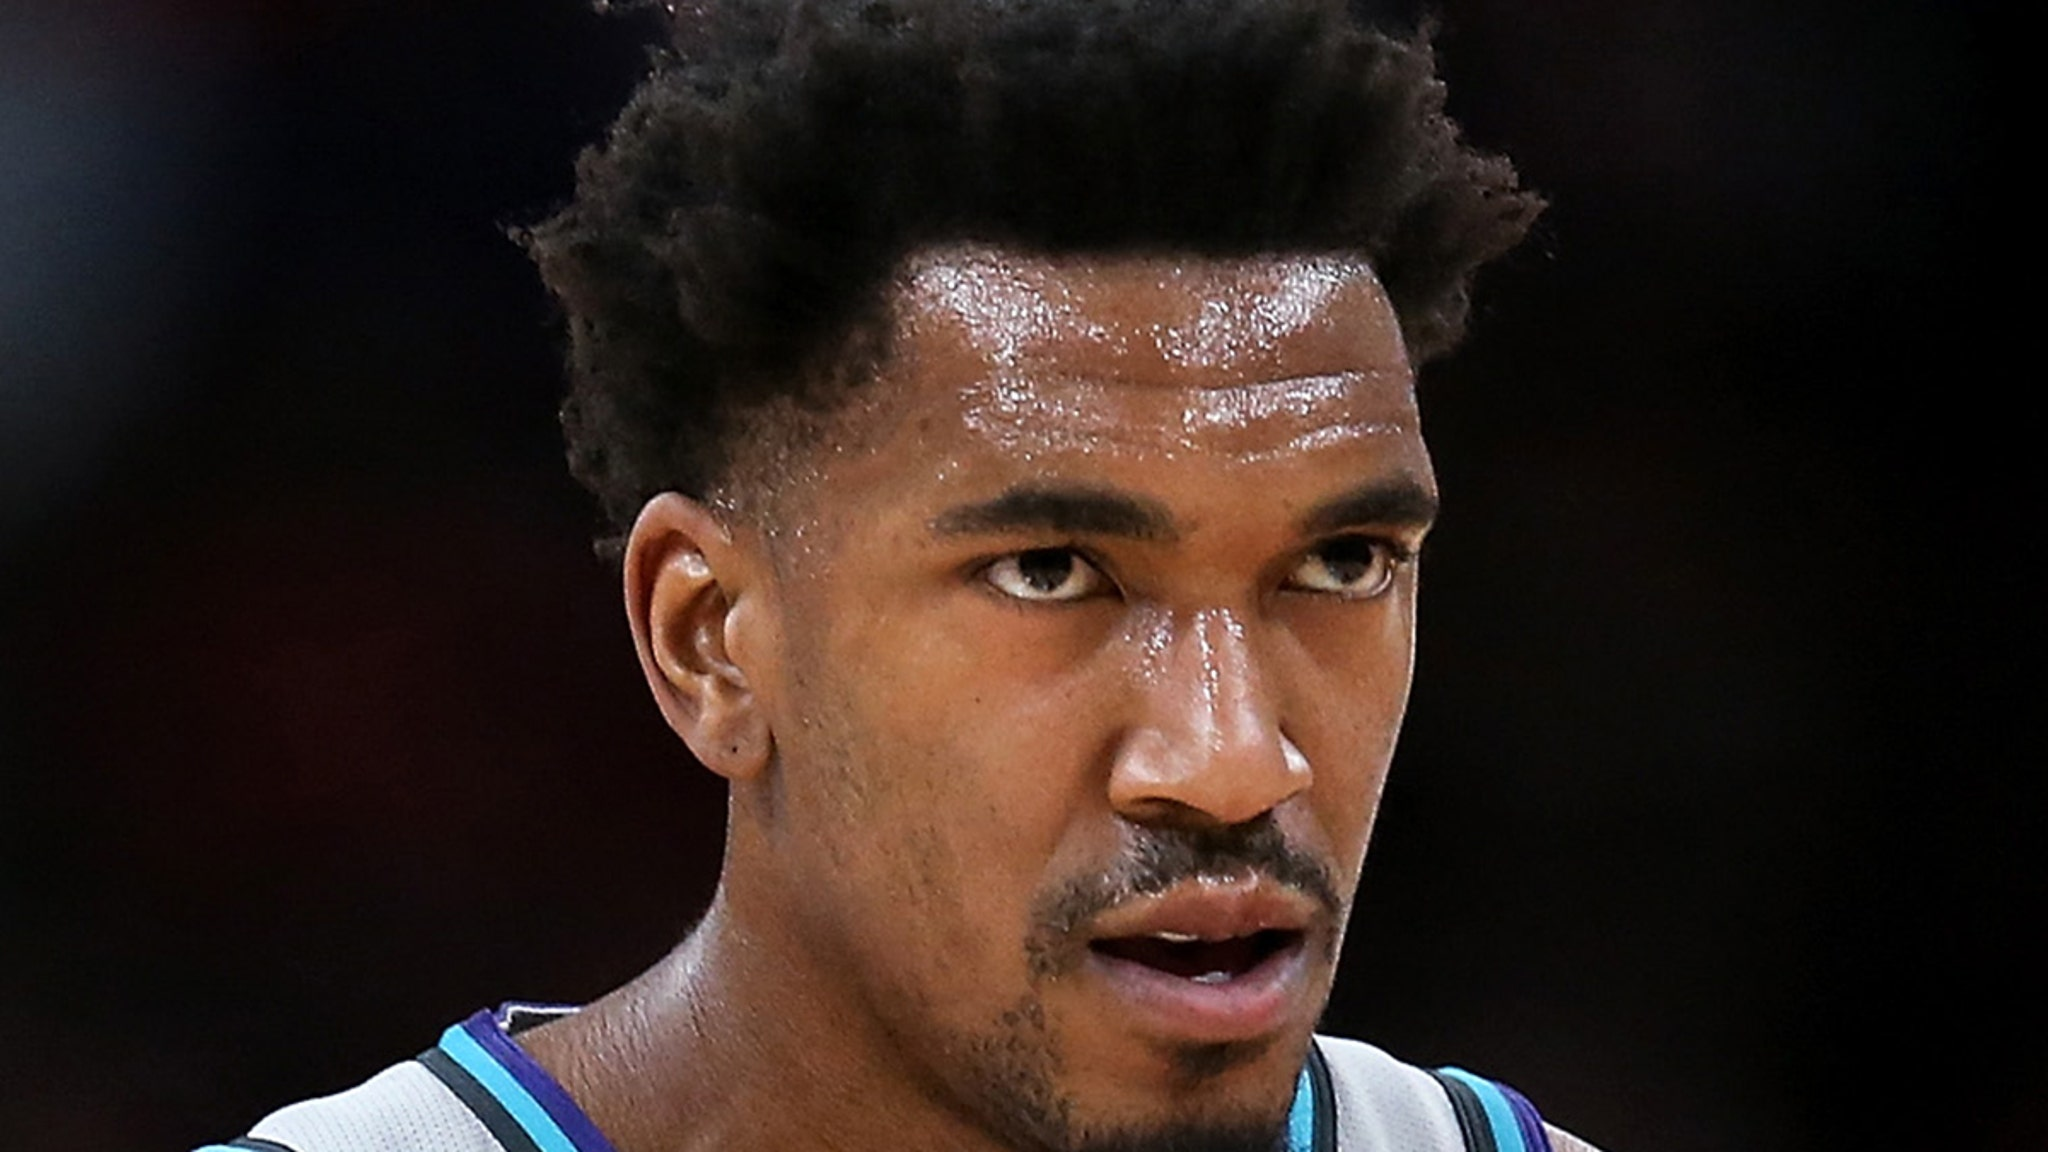 NBA's Malik Monk Suspended for Violating League's Anti-Drug Program